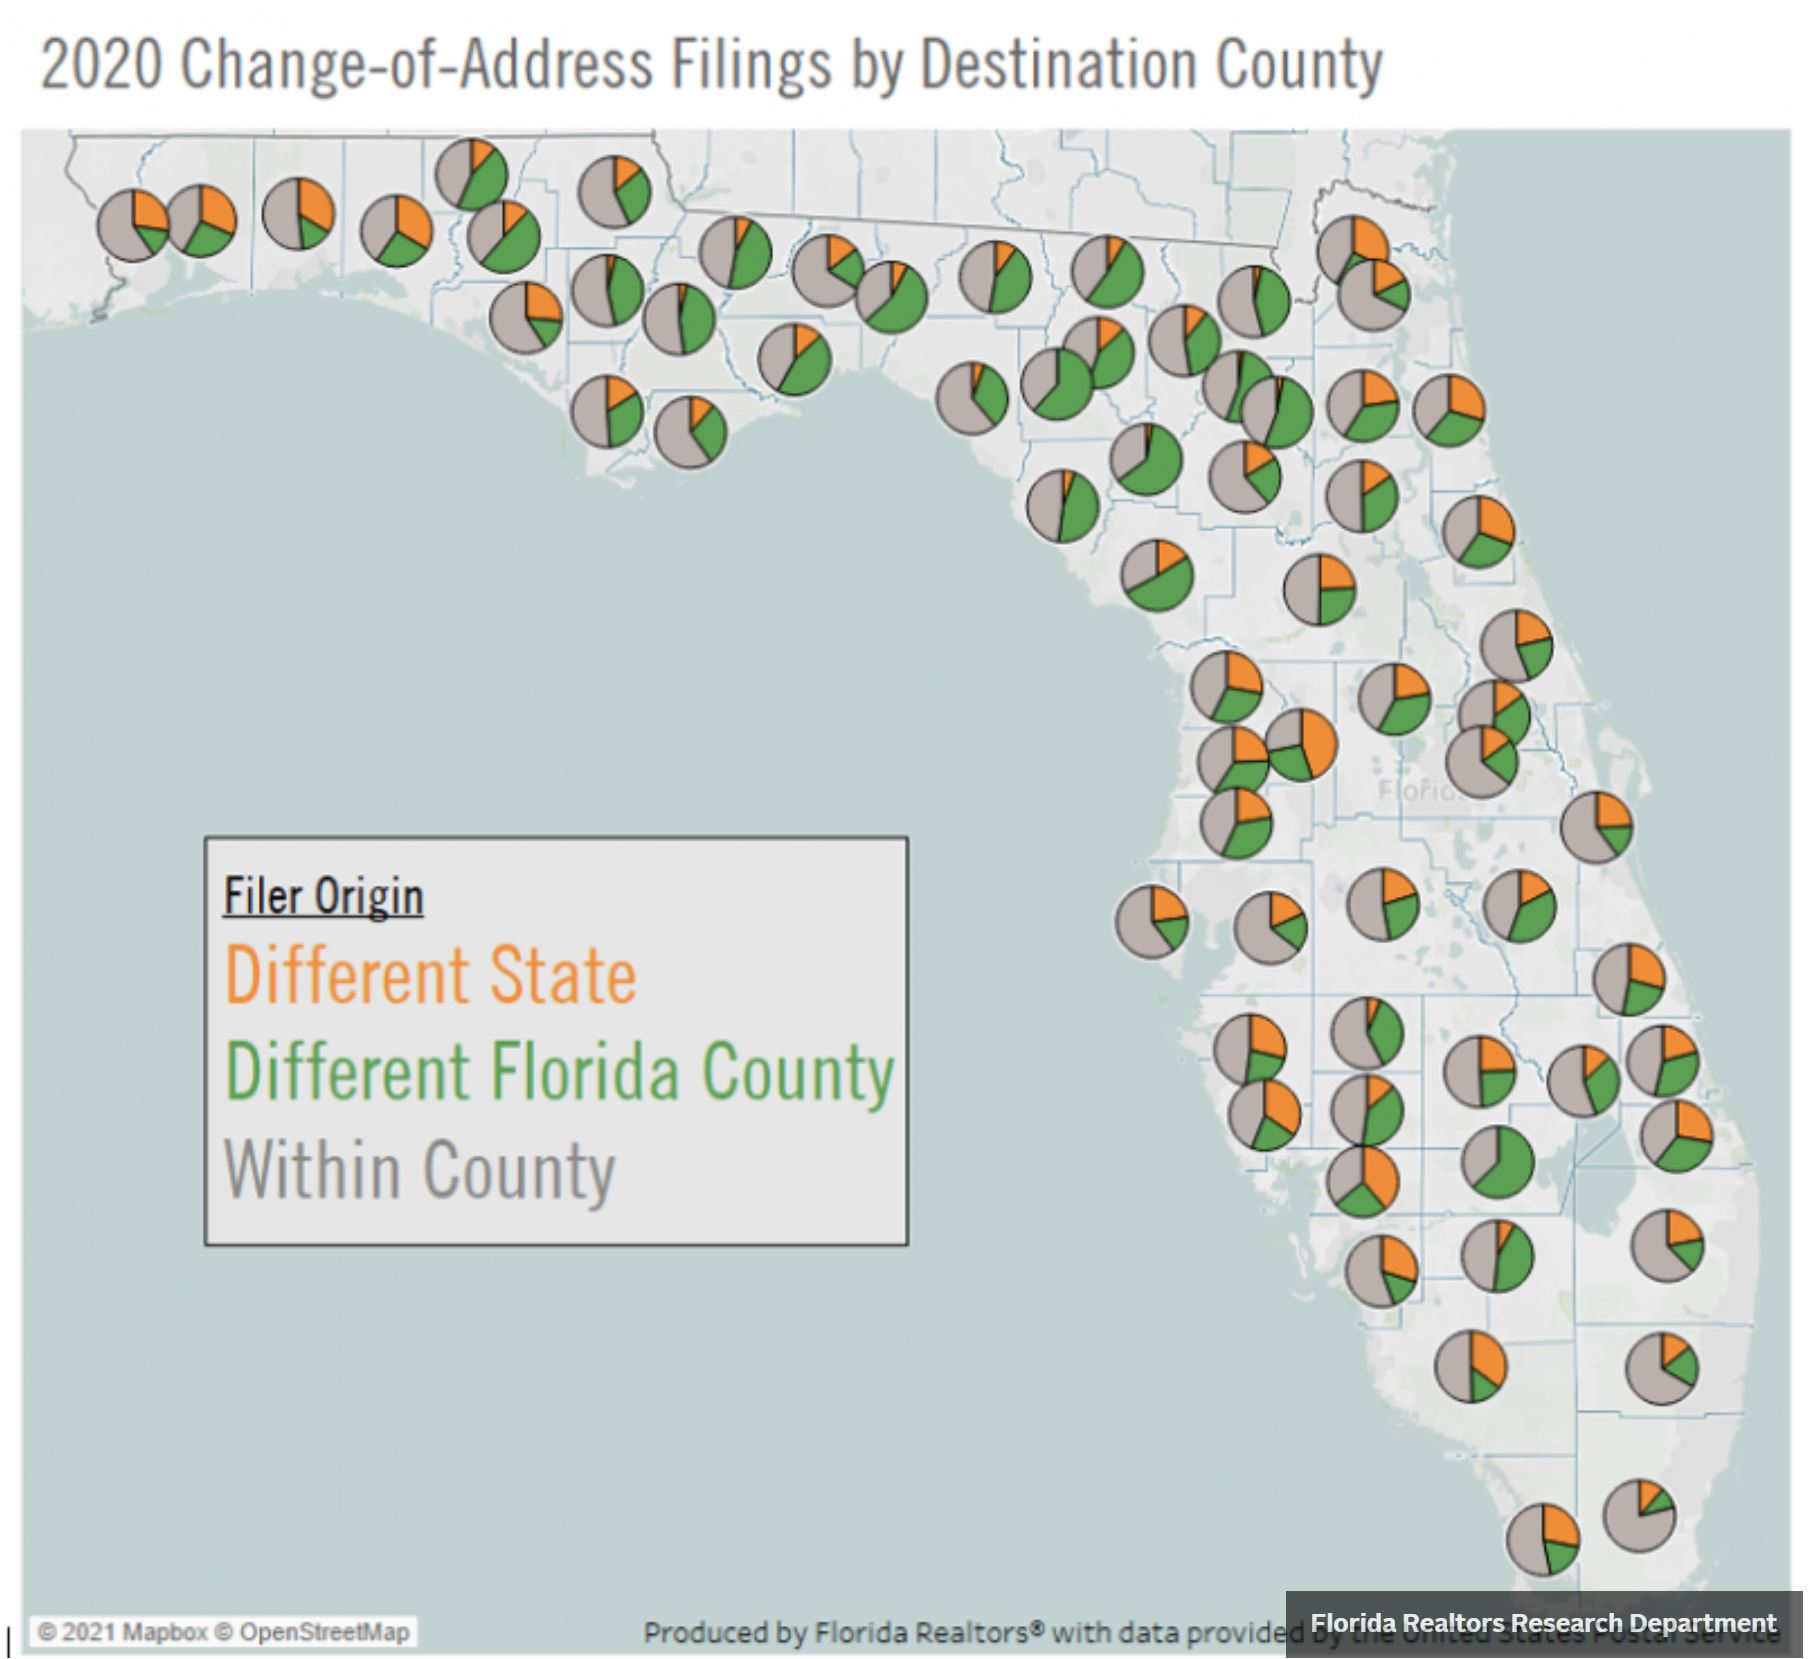 Florida Realtor Magazine 2021 06 08 2020 FL Change of address by Florida county since going through the China COVID-19 Coronavirus plandemic Hoey Team exp Realty